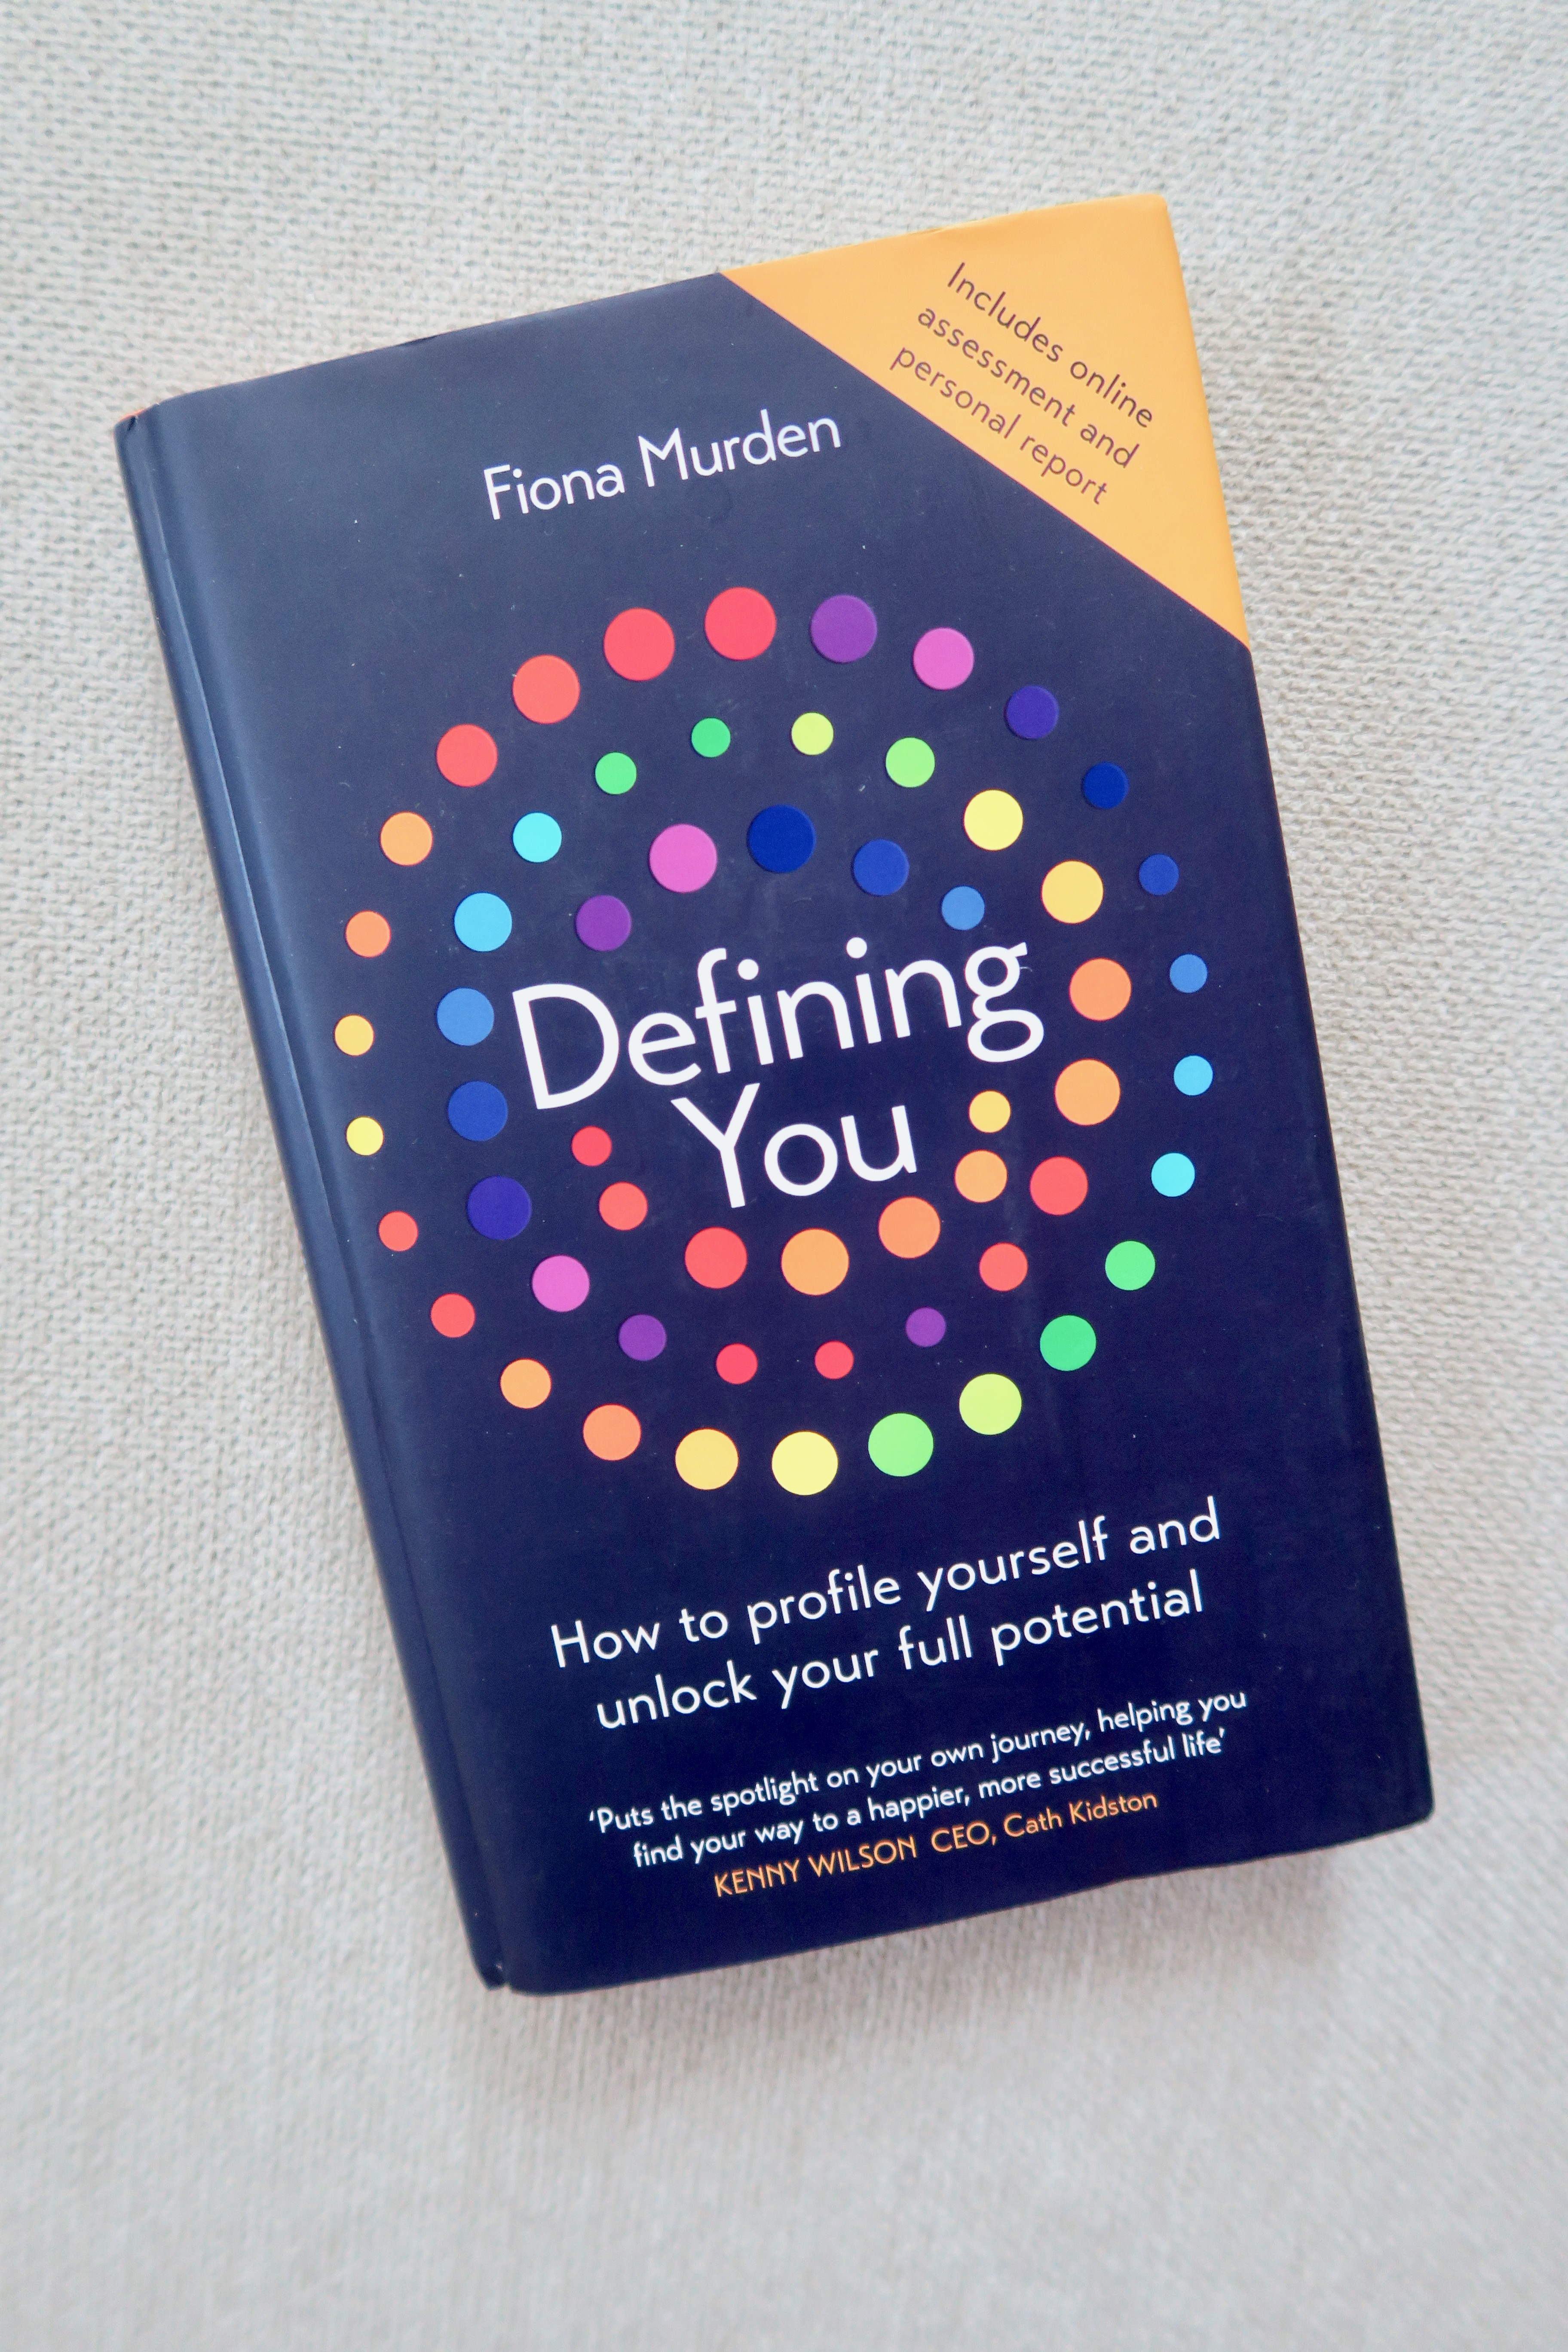 Defining You: How To Profile Yourself and Unlock Your Full Potential by Fiona Murden